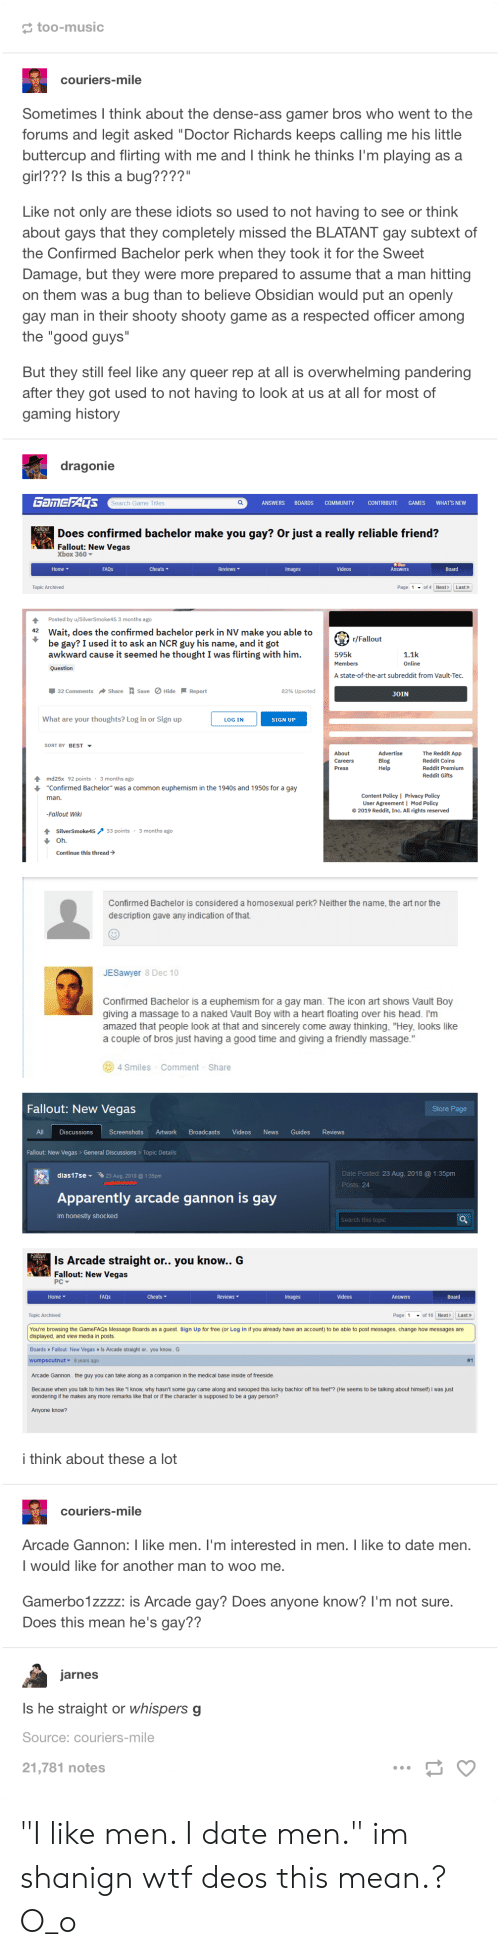 """Euphemism: too-music  couriers-mile  Sometimes I think about the dense-ass gamer bros who went to the  forums and legit asked """"Doctor Richards keeps calling me his little  buttercup and flirting with me and I think he thinks I'm playing as a  girl??? Is this a bug????""""  Like not only are these idiots so used to not having to see or think  about gays that they completely missed the BLATANT gay subtext of  the Confirmed Bachelor perk when they took it for the Sweet  Damage, but they were more prepared to assume that a man hitting  on them was a bug than to believe Obsidian would put an openly  gay man in their shooty shooty game as a respected officer among  the """"good guys""""  But they still feel like any queer rep at all is overwhelming pandering  after they got used to not having to look at us at all for most of  gaming history  dragonie  GAMEFADS  ANSWERS  BOARDS  WHAT'S NEW  Search Game Titles  COMMUNITY  CONTRIBUTE  GAMES  Does confirmed bachelor make you gay? Or just a really reliable friend?  Fallout: New Vegas  Xbox 360  Cheats  Reviews  Videos  Home  FAQS  Images  Answers  Board  Page 1of 4 Next>  Topic Archived  Last»  Posted by u/SilverSmoke 45 3 months ago  42  Wait, does the confirmed bachelor perk in NV make you able to  be gay? I used it to ask an NCR guy his name, and it got  awkward cause it seemed he thought I was flirting with him.  r/Fallout  595k  1.1k  Members  Online  Question  A state-of-the-art subreddit from Vault-Tec  32 Comments Share# Save Hide Report  82% Upvoted  JOIN  What are your thoughts? Log in or Sign up  LOG IN  SIGN UP  SORT BY BEST  The Reddit App  Advertise  About  Careers  Blog  Help  Reddit Coins  Reddit Premium  Press  Reddit Gifts  3 months ago  md25x 92 points  """"Confirmed Bachelor"""" was a common euphemism in the 1940s and 1950s for a gay  Content Policy 